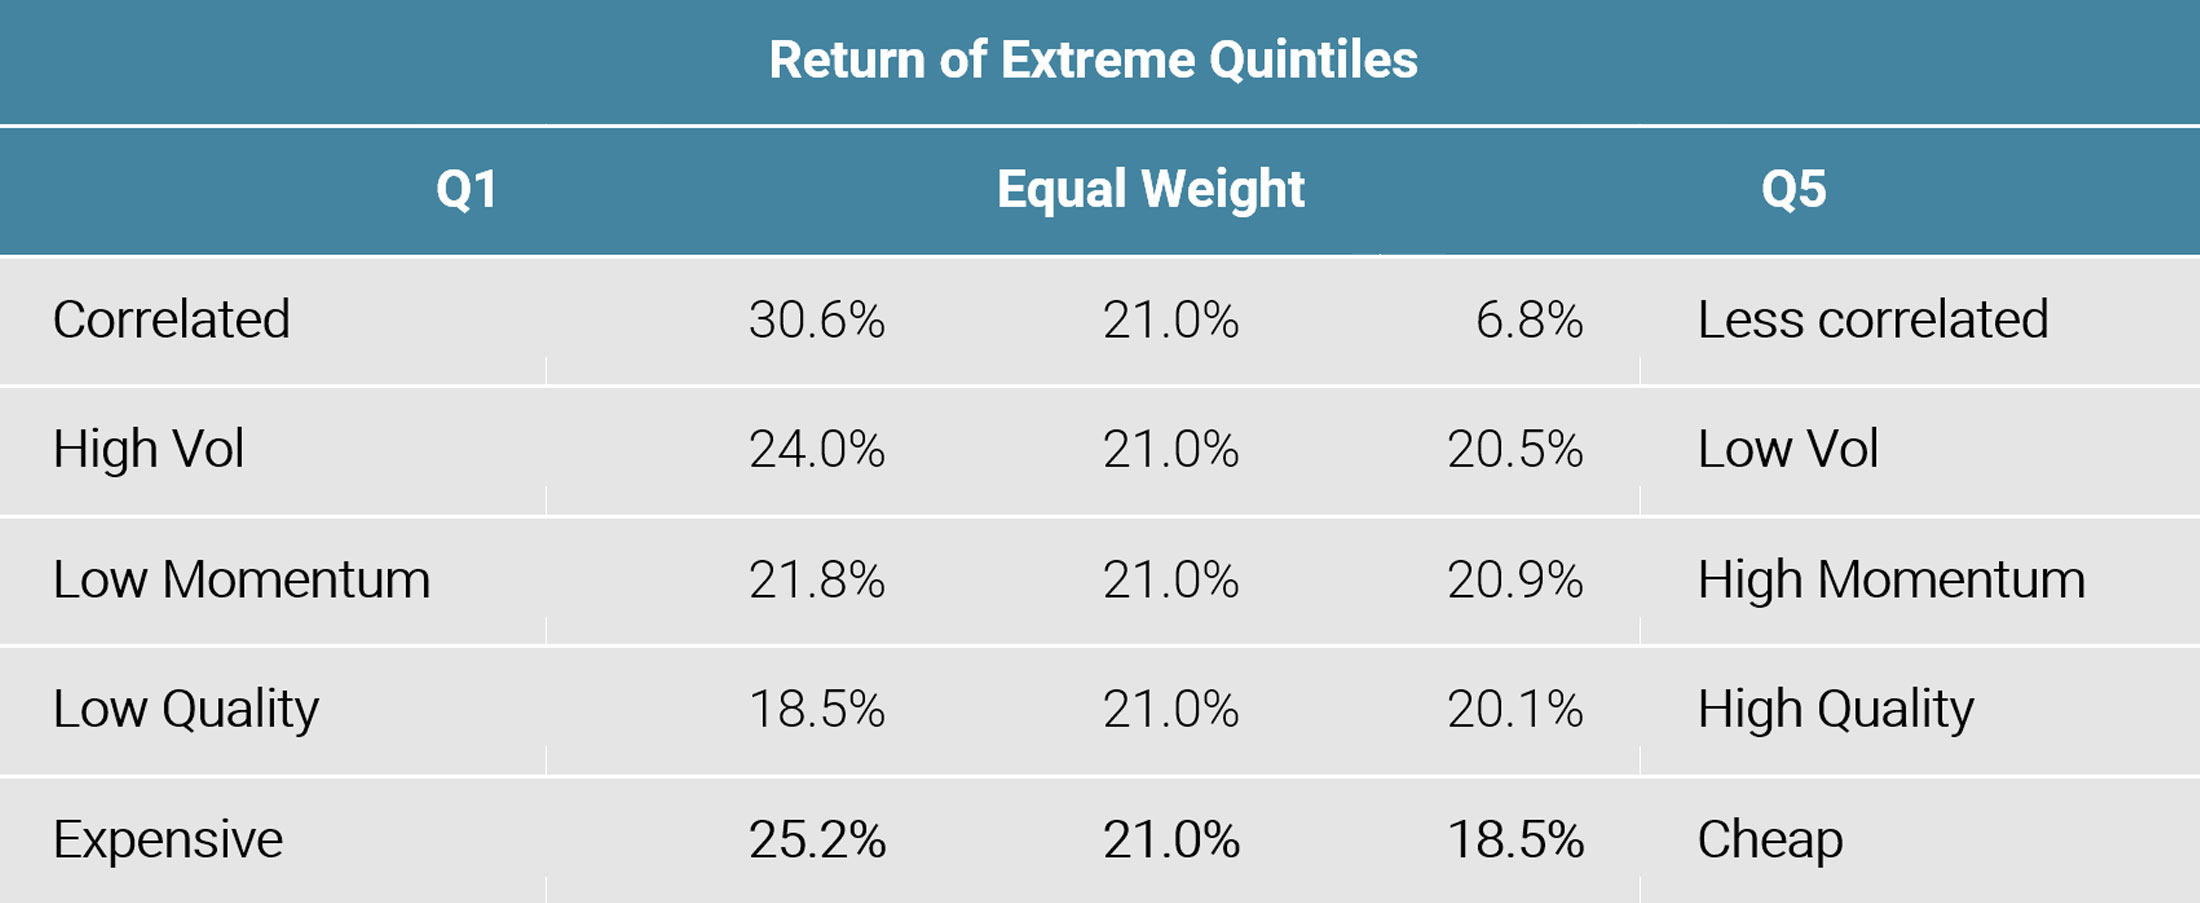 Figure 3: Returns of Extreme Style Quintiles in 2019